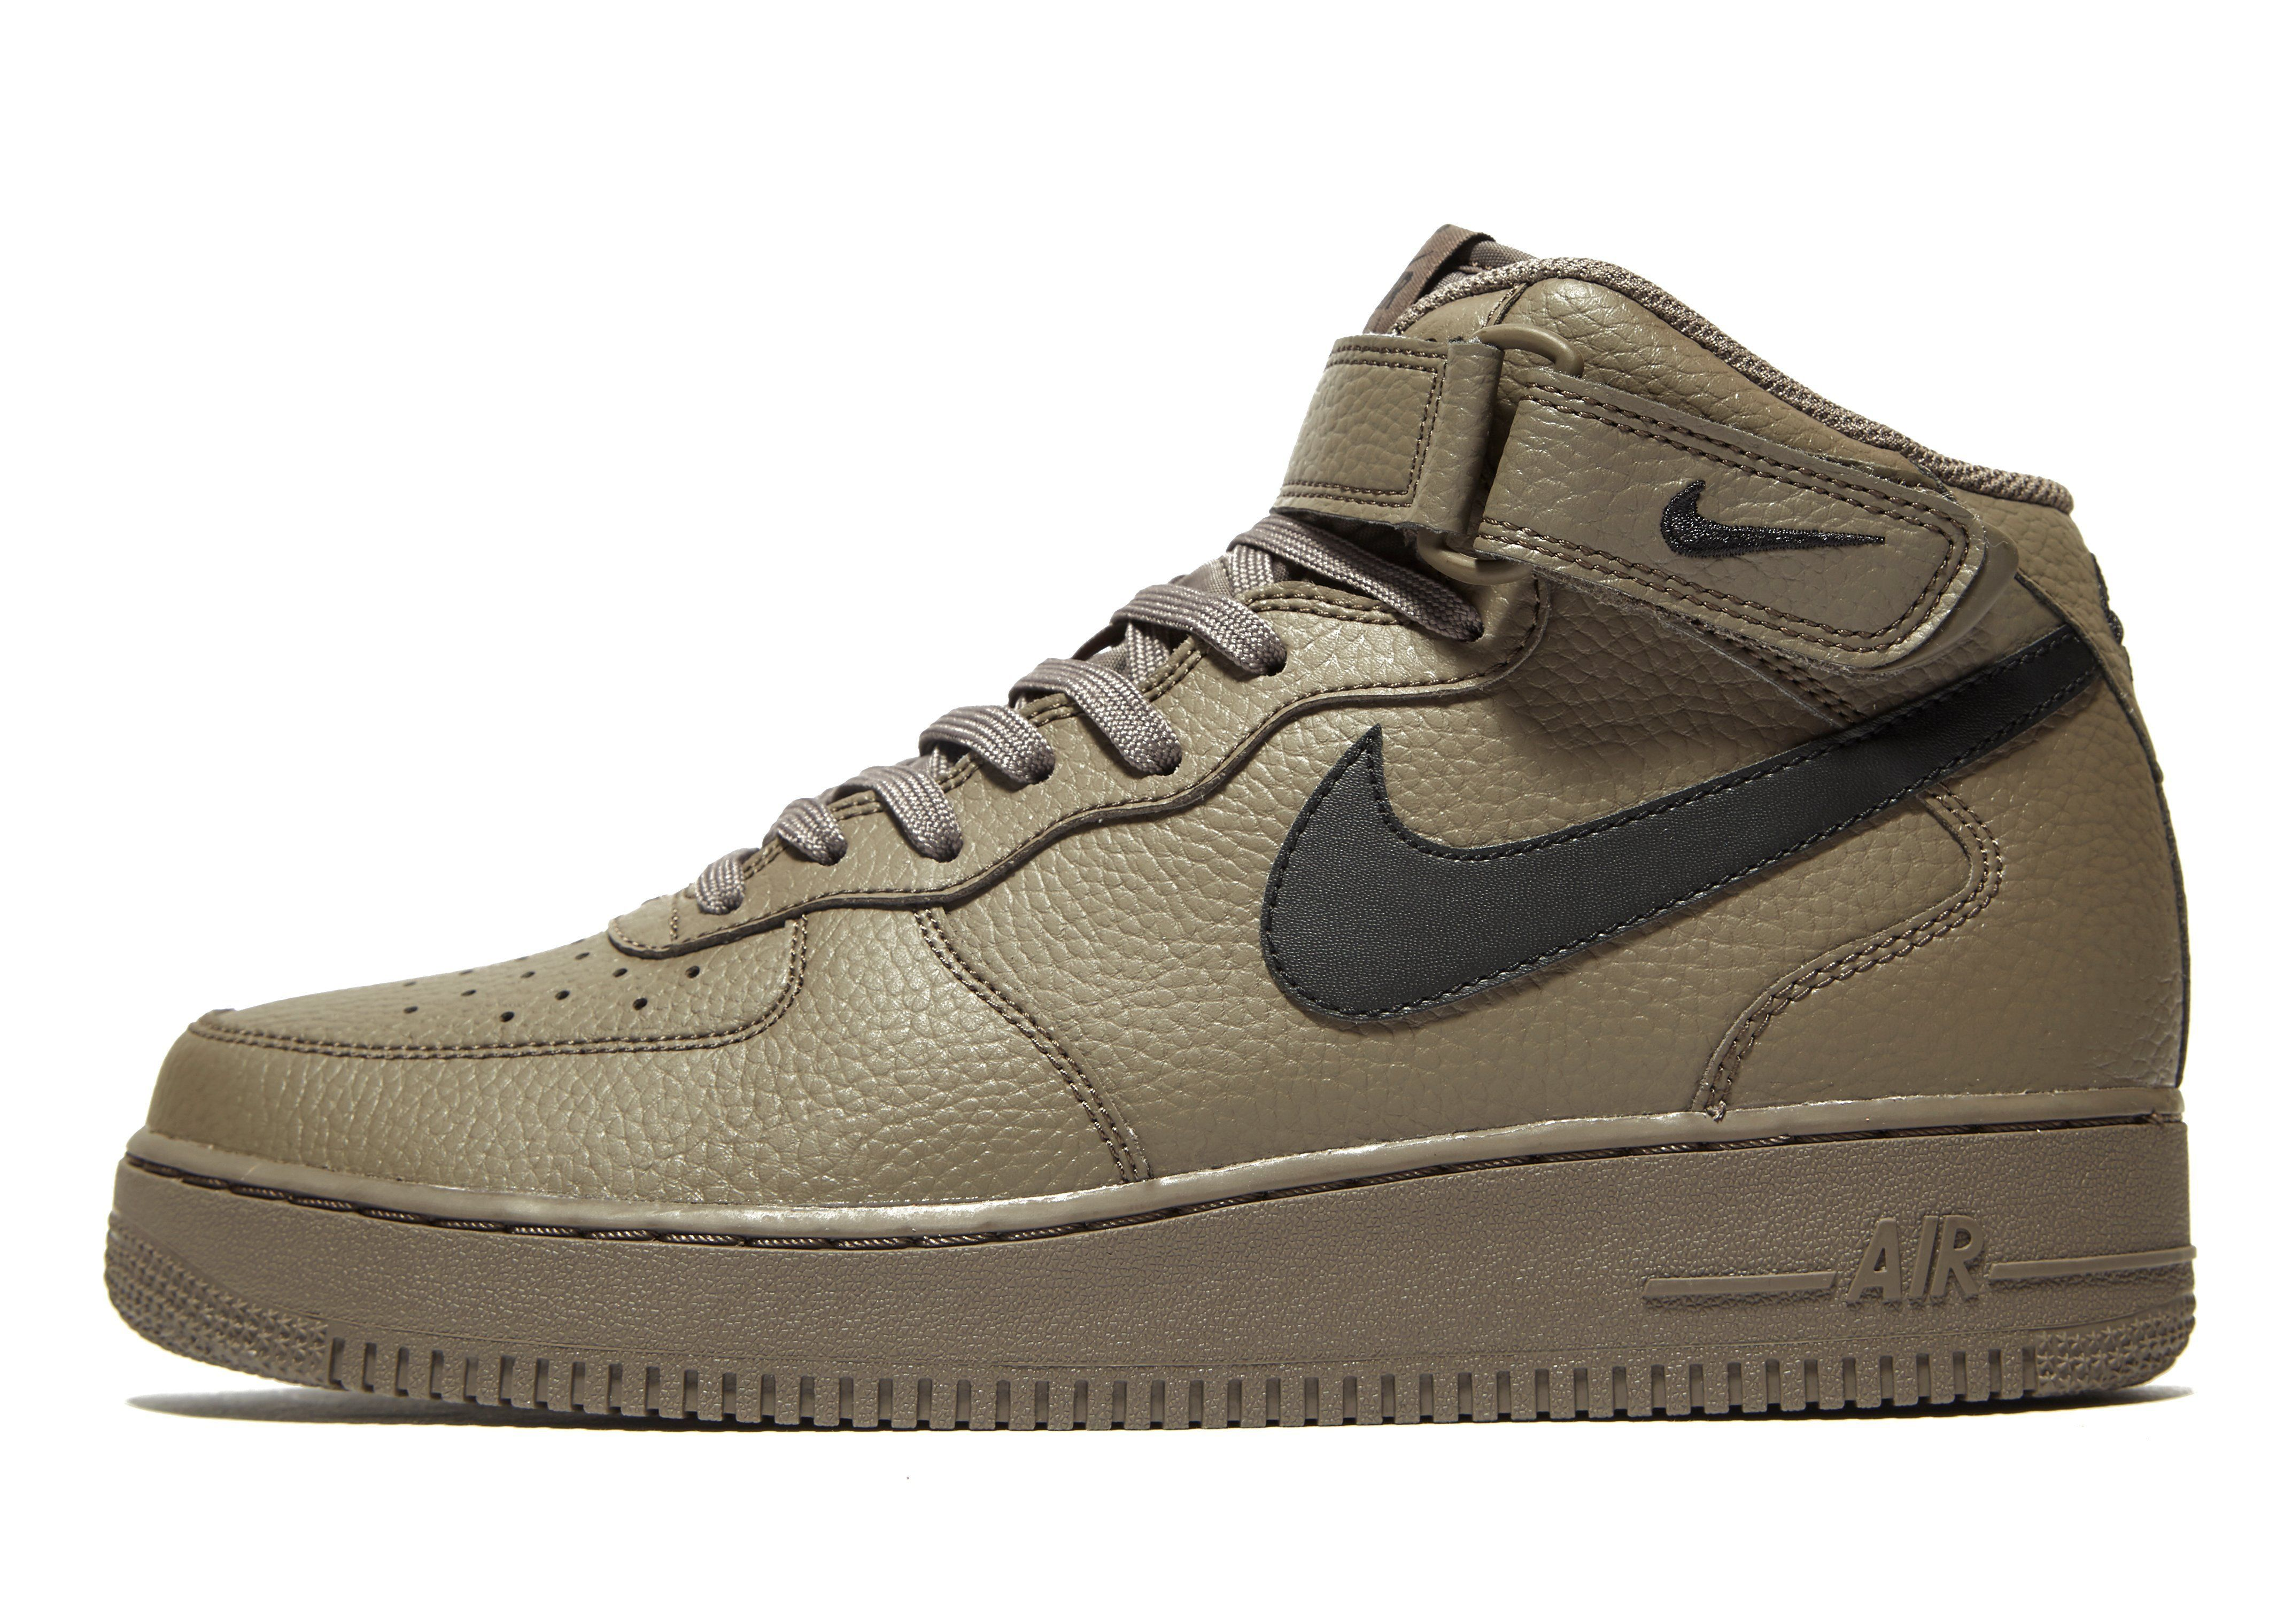 Nike Air Force 1 Mid Shop online for Nike Air Force 1